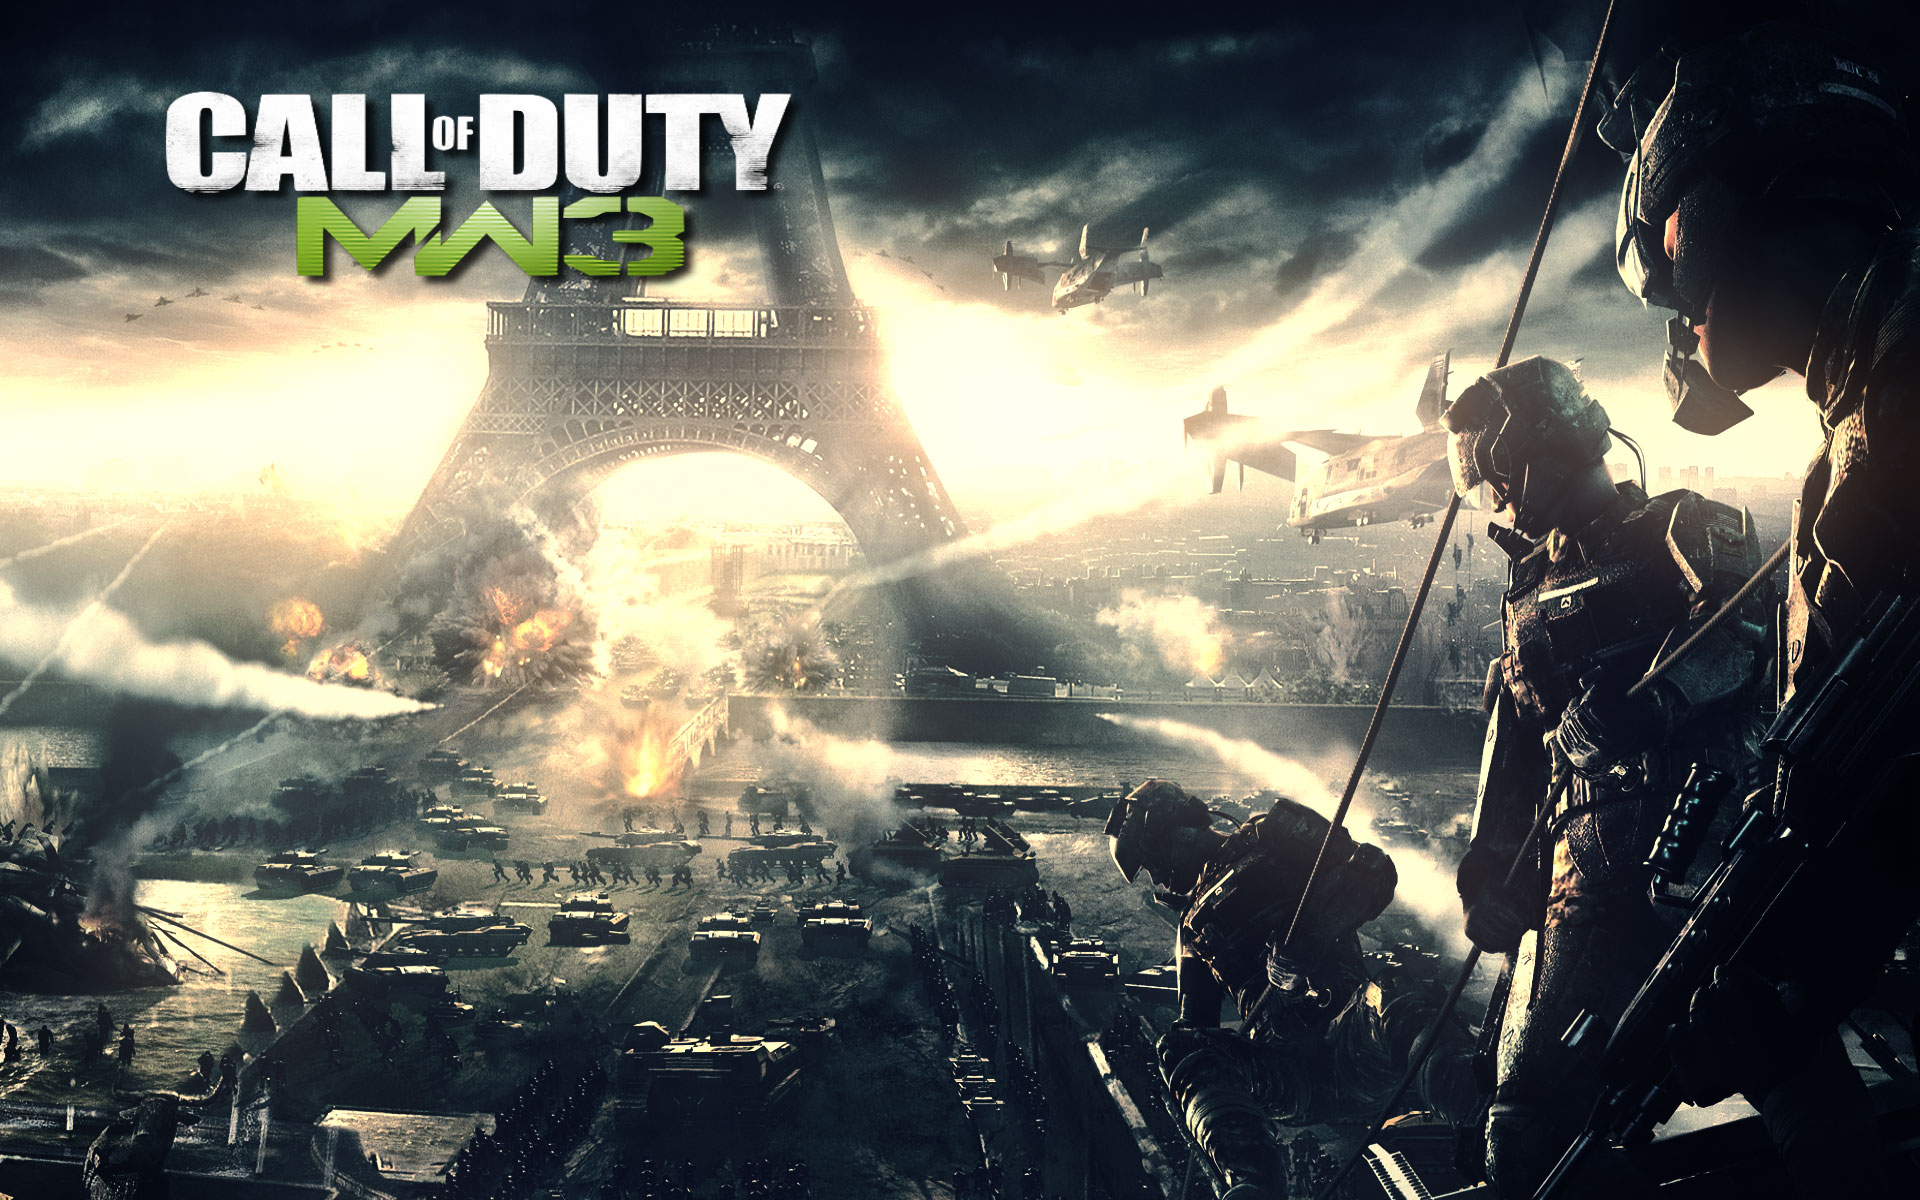 call of duty modern warfare 3 картинки